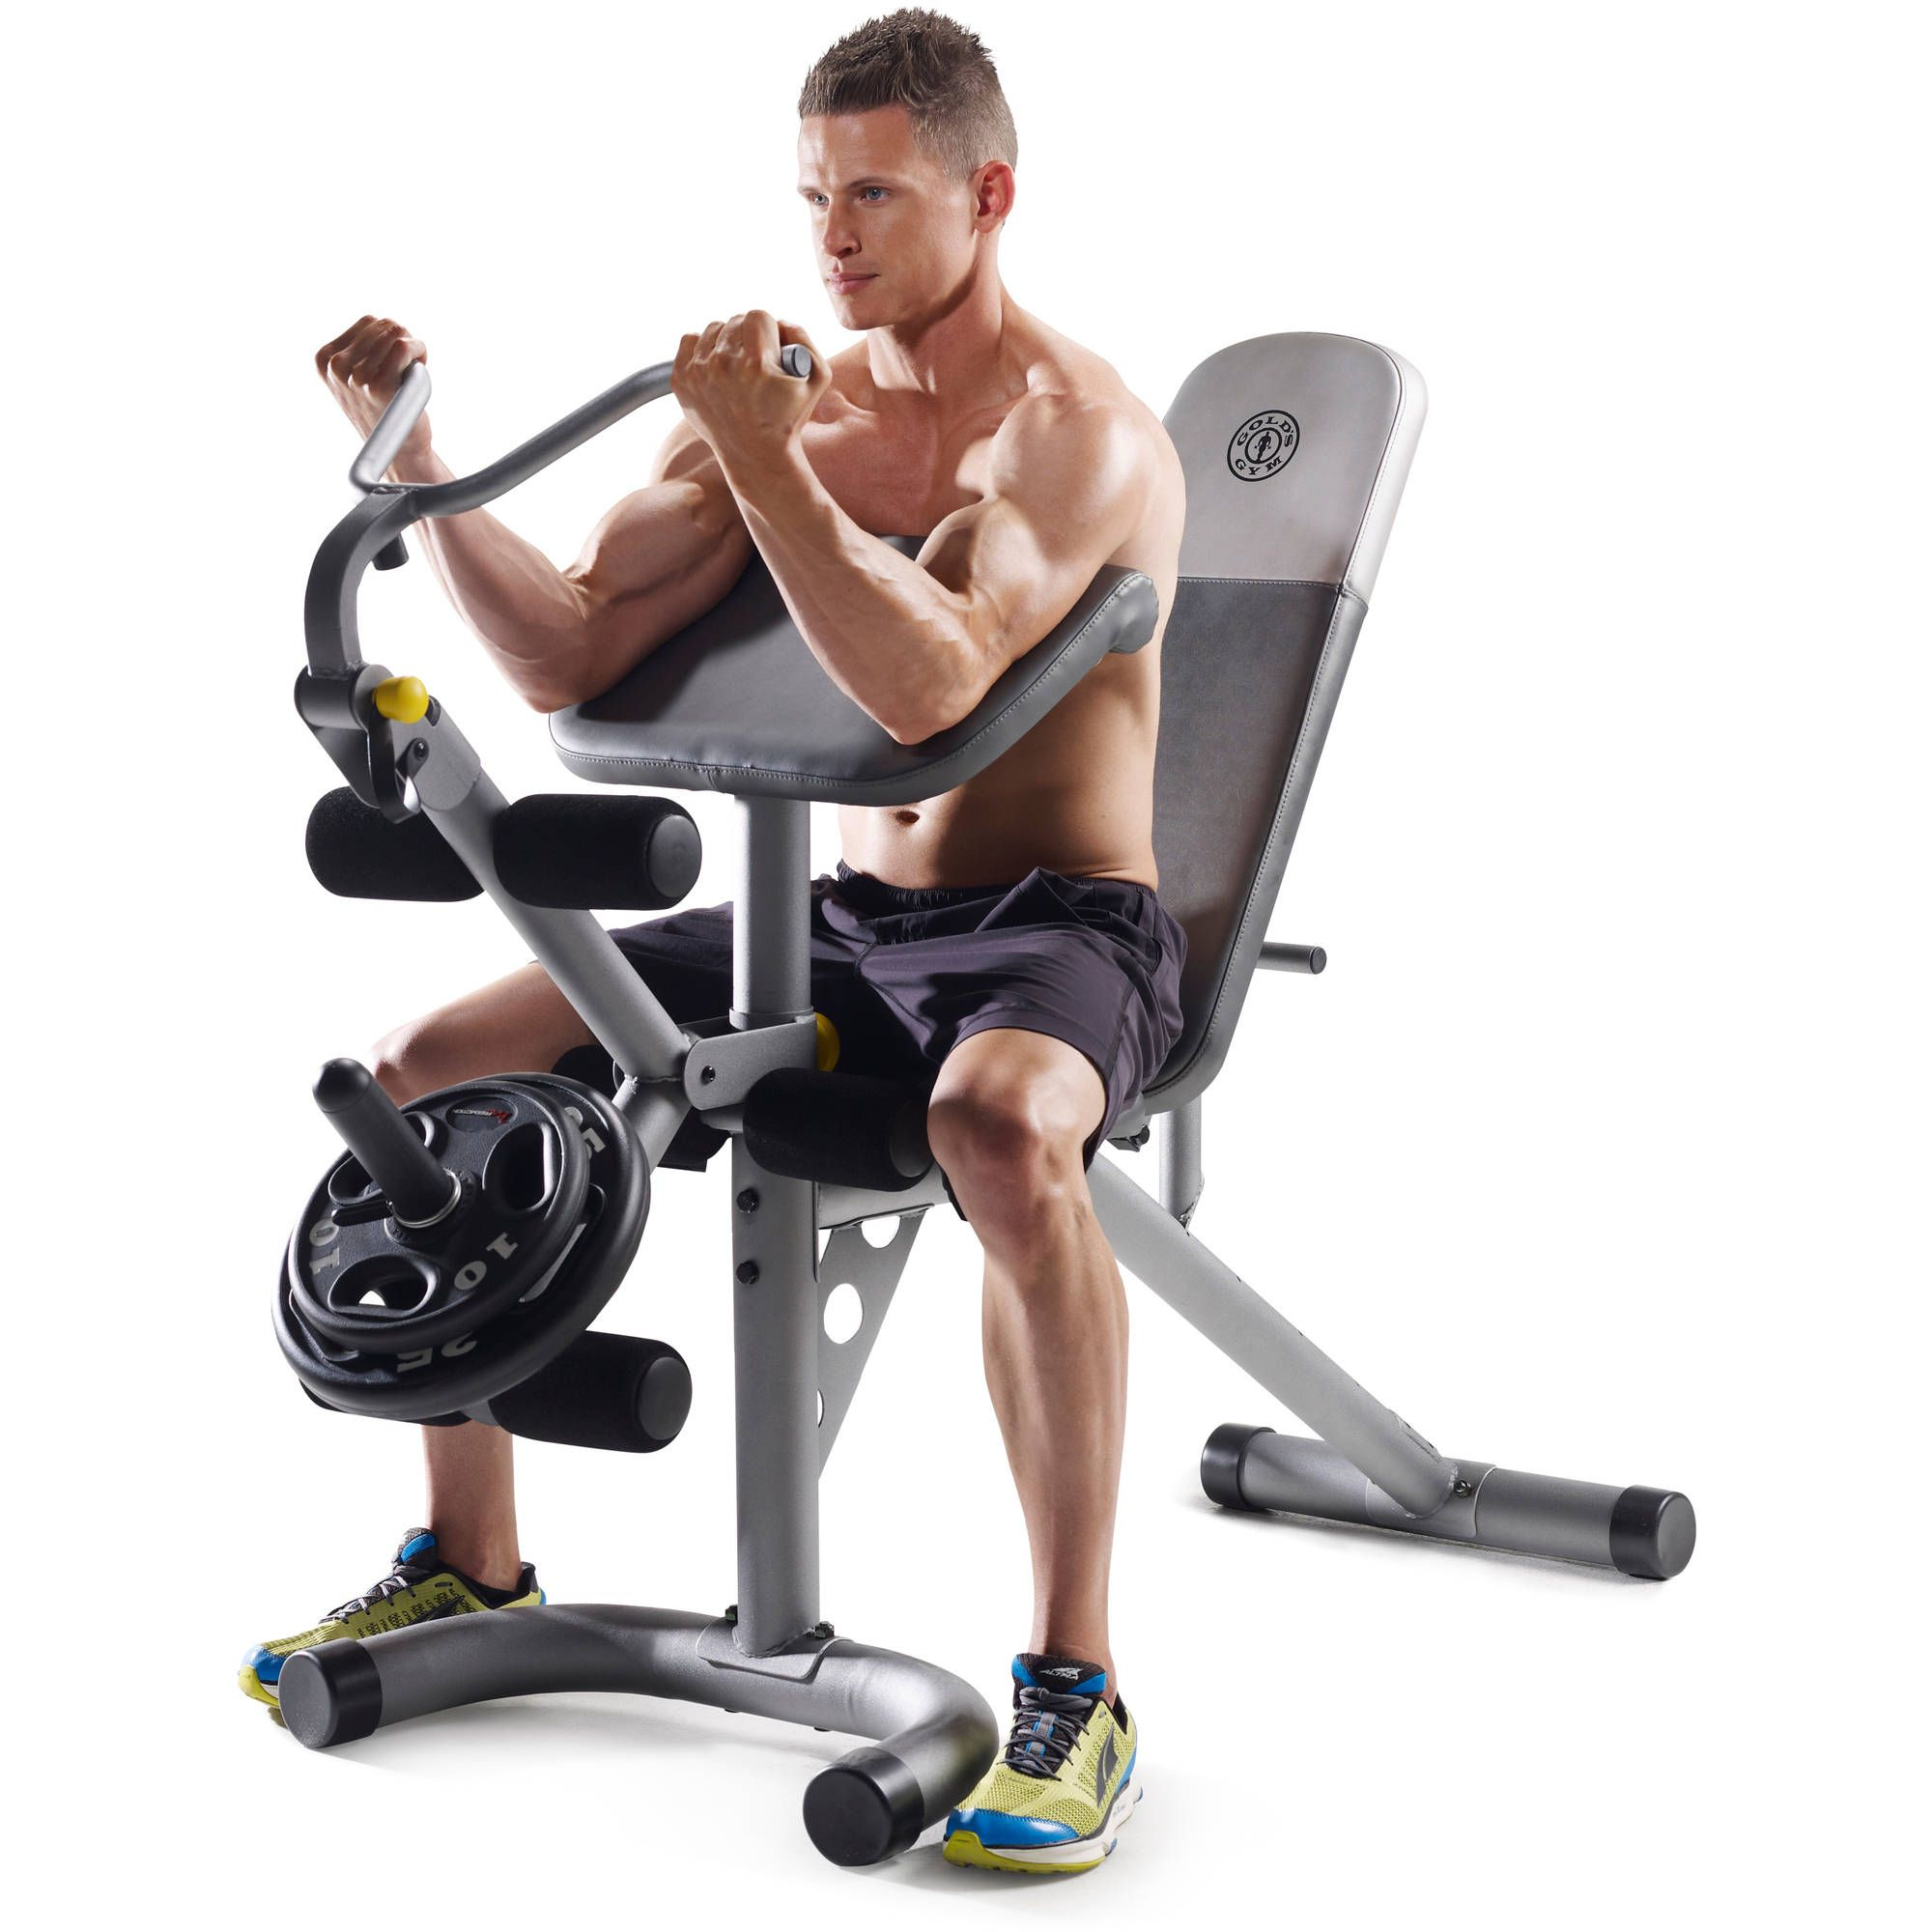 Golds Gym XRS  Olympic Workout Bench For Sale Best Fitness - Home gym equipment for sale